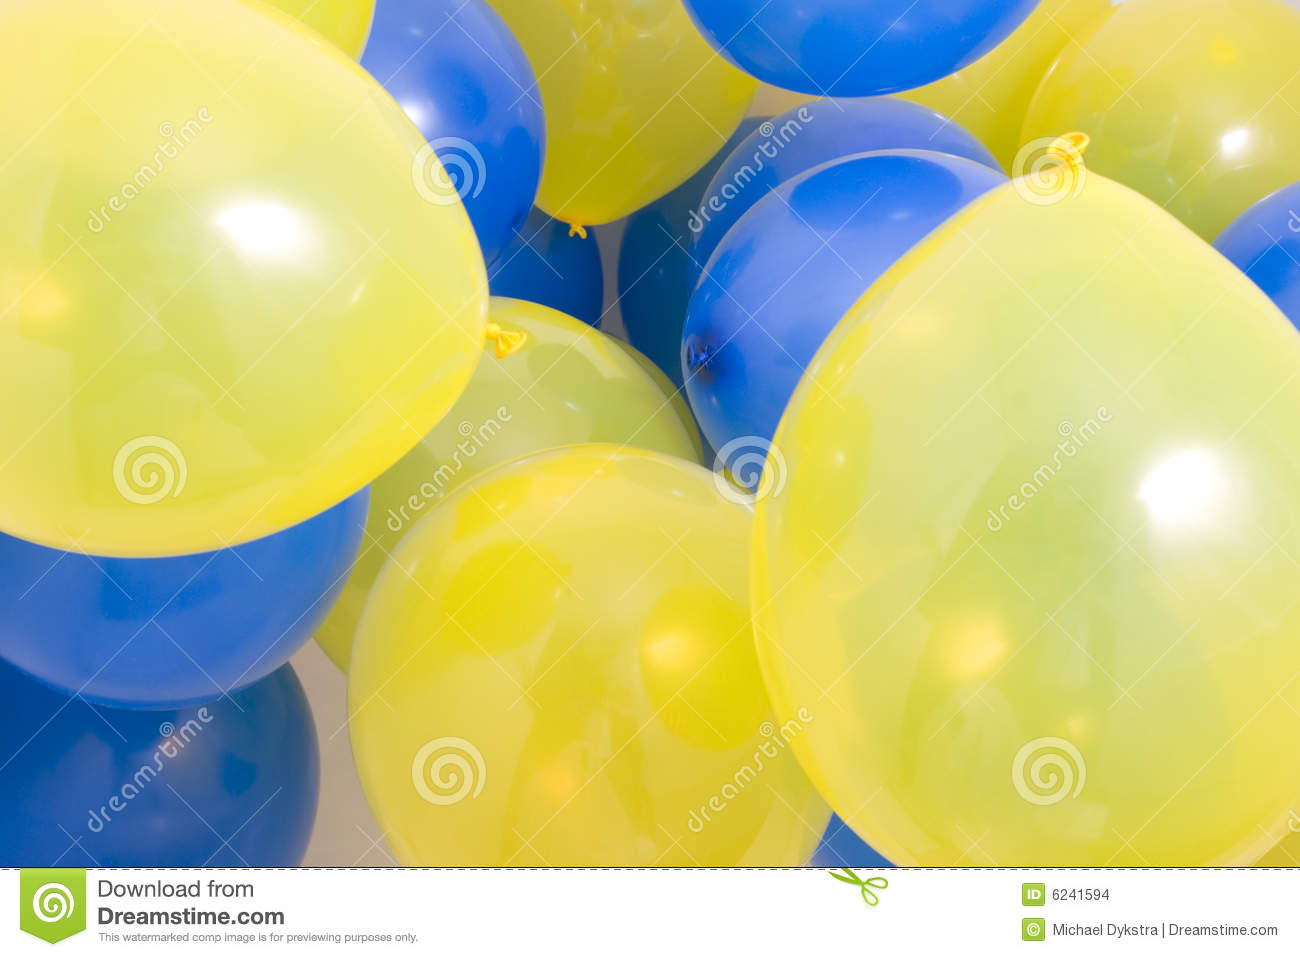 Animated Happy Birthday Wallpaper Free Download Blue And Yellow Balloons Background Stock Images Image